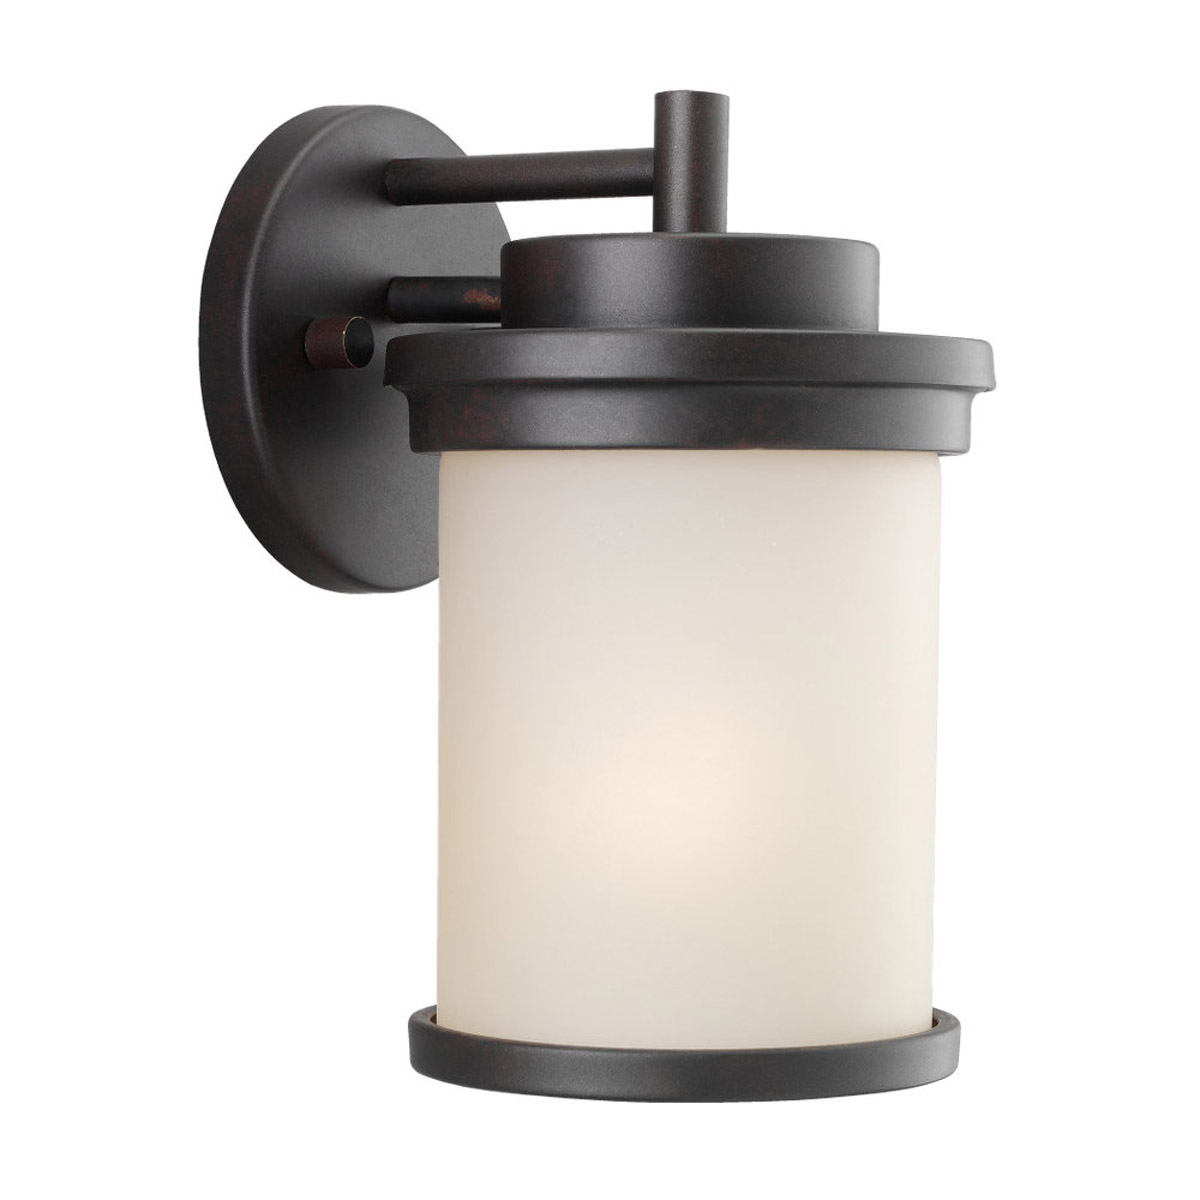 Sea Gull Lighting Winnetka 1 Light Outdoor Wall Lantern in Misted Bronze 88660-814 photo